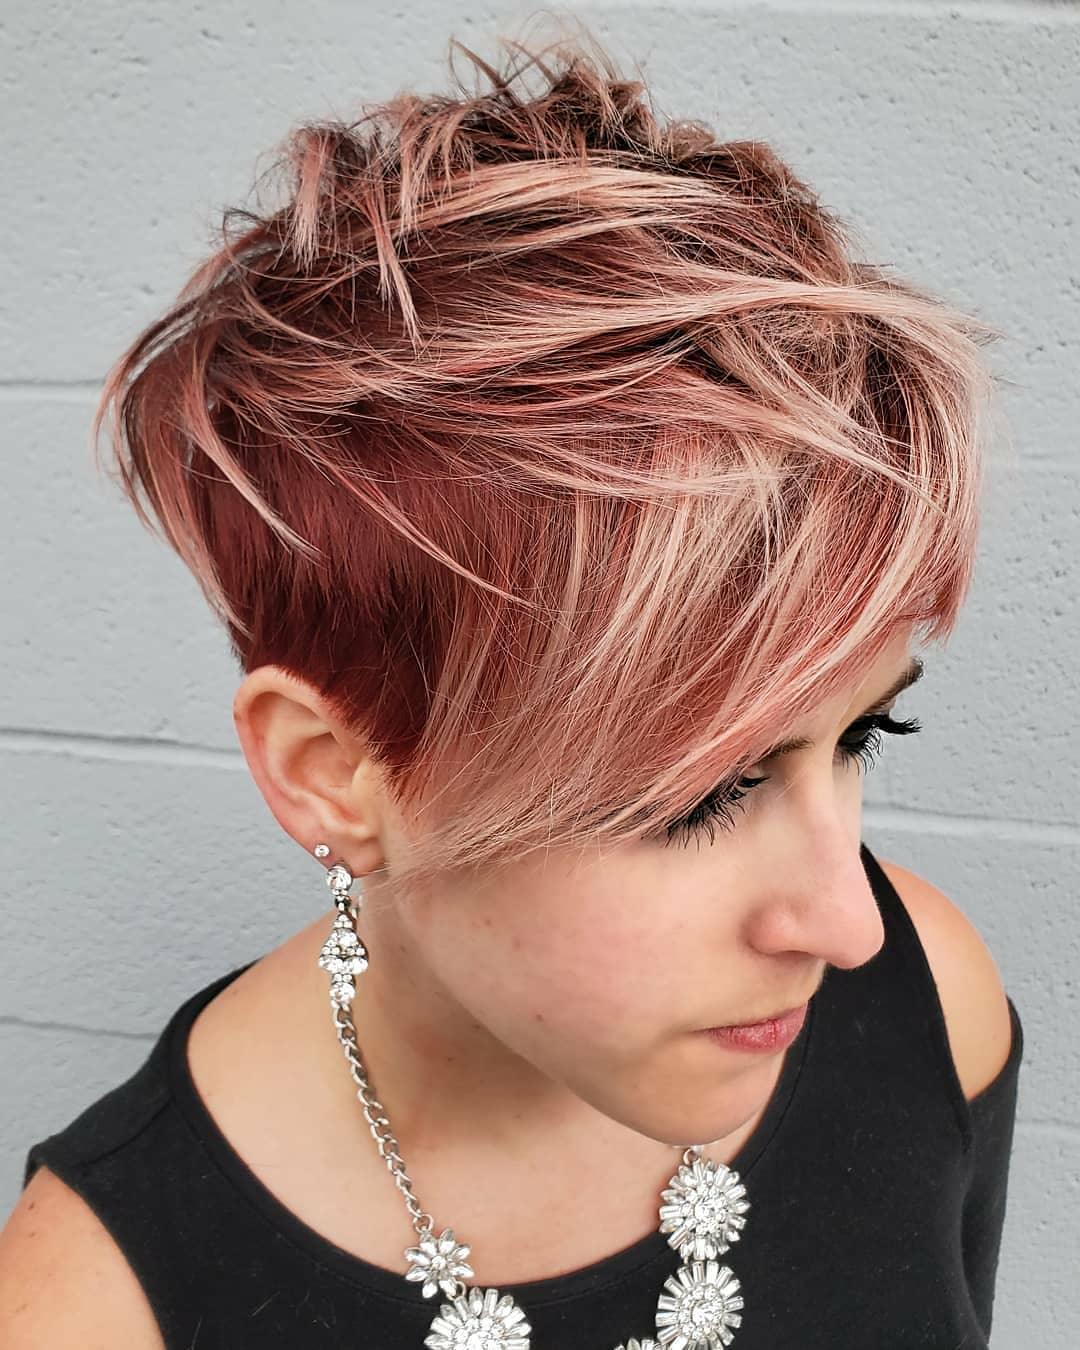 100+ Short Hairstyles and Haircuts You Need to Try in 2020 images 1